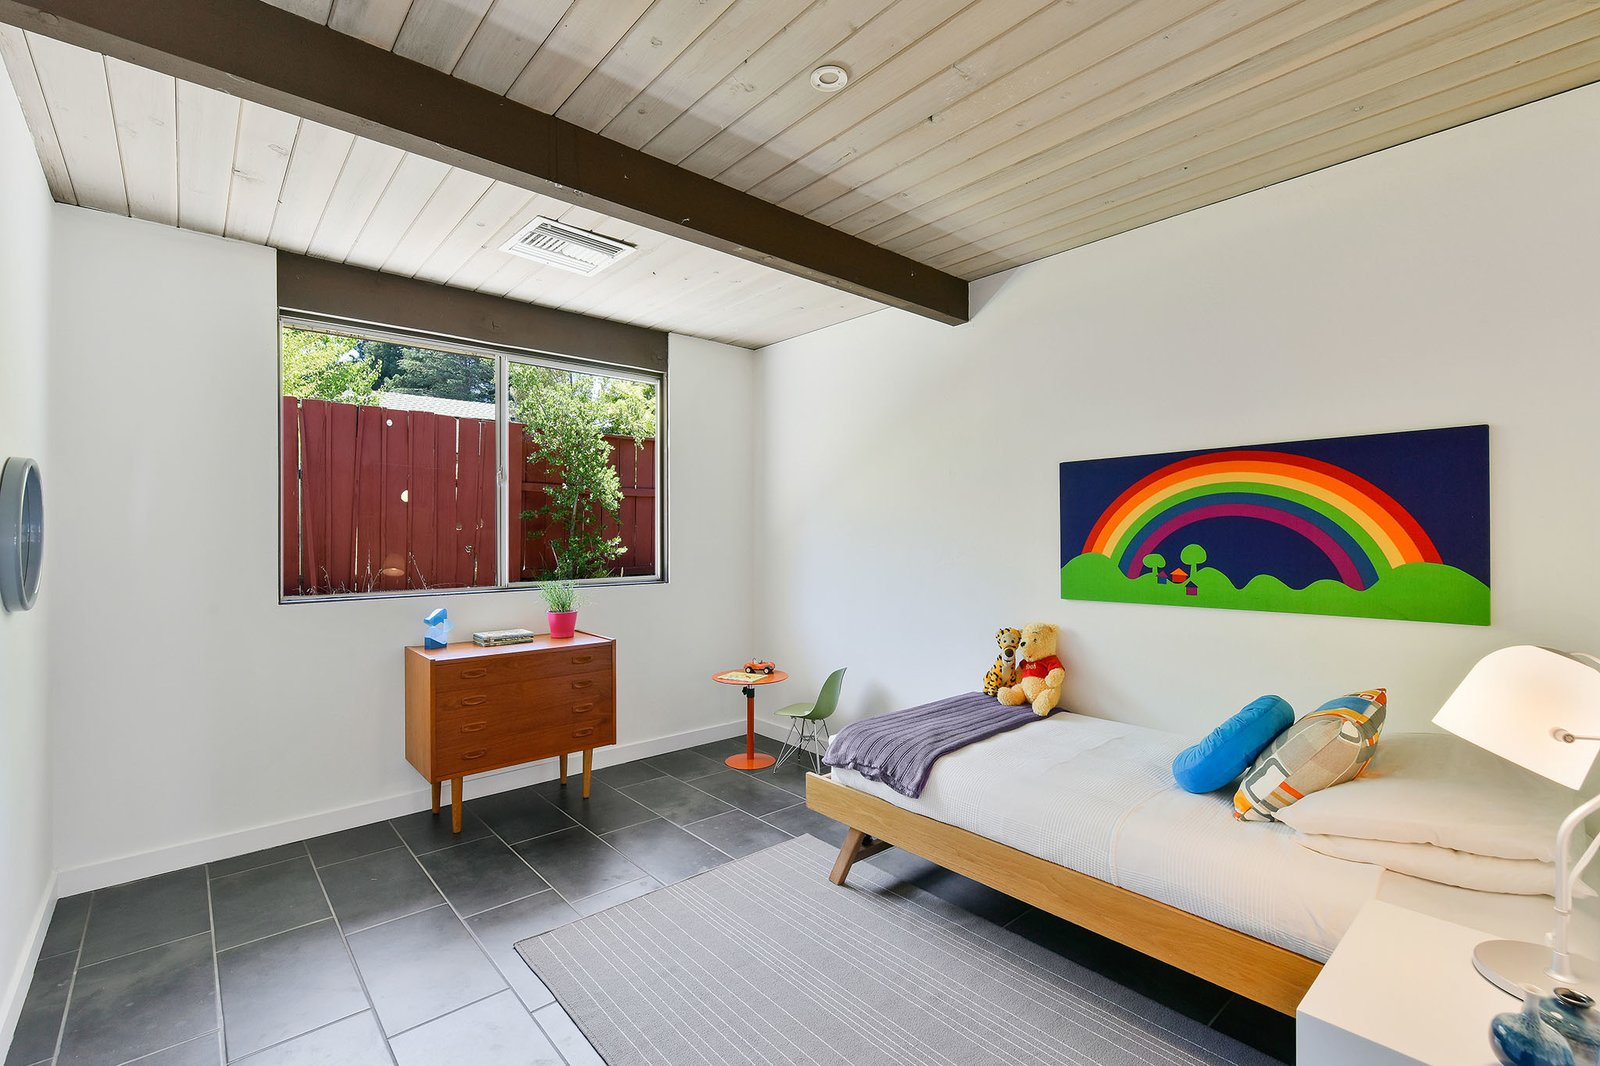 Kids, Bedroom, Bed, Lamps, Dresser, and Porcelain Tile In total, there are four bedrooms in the home.     Best Bedroom Dresser Night Stands Photos from A Bright and Breezy Eichler Hits the Market at $1.45M in California